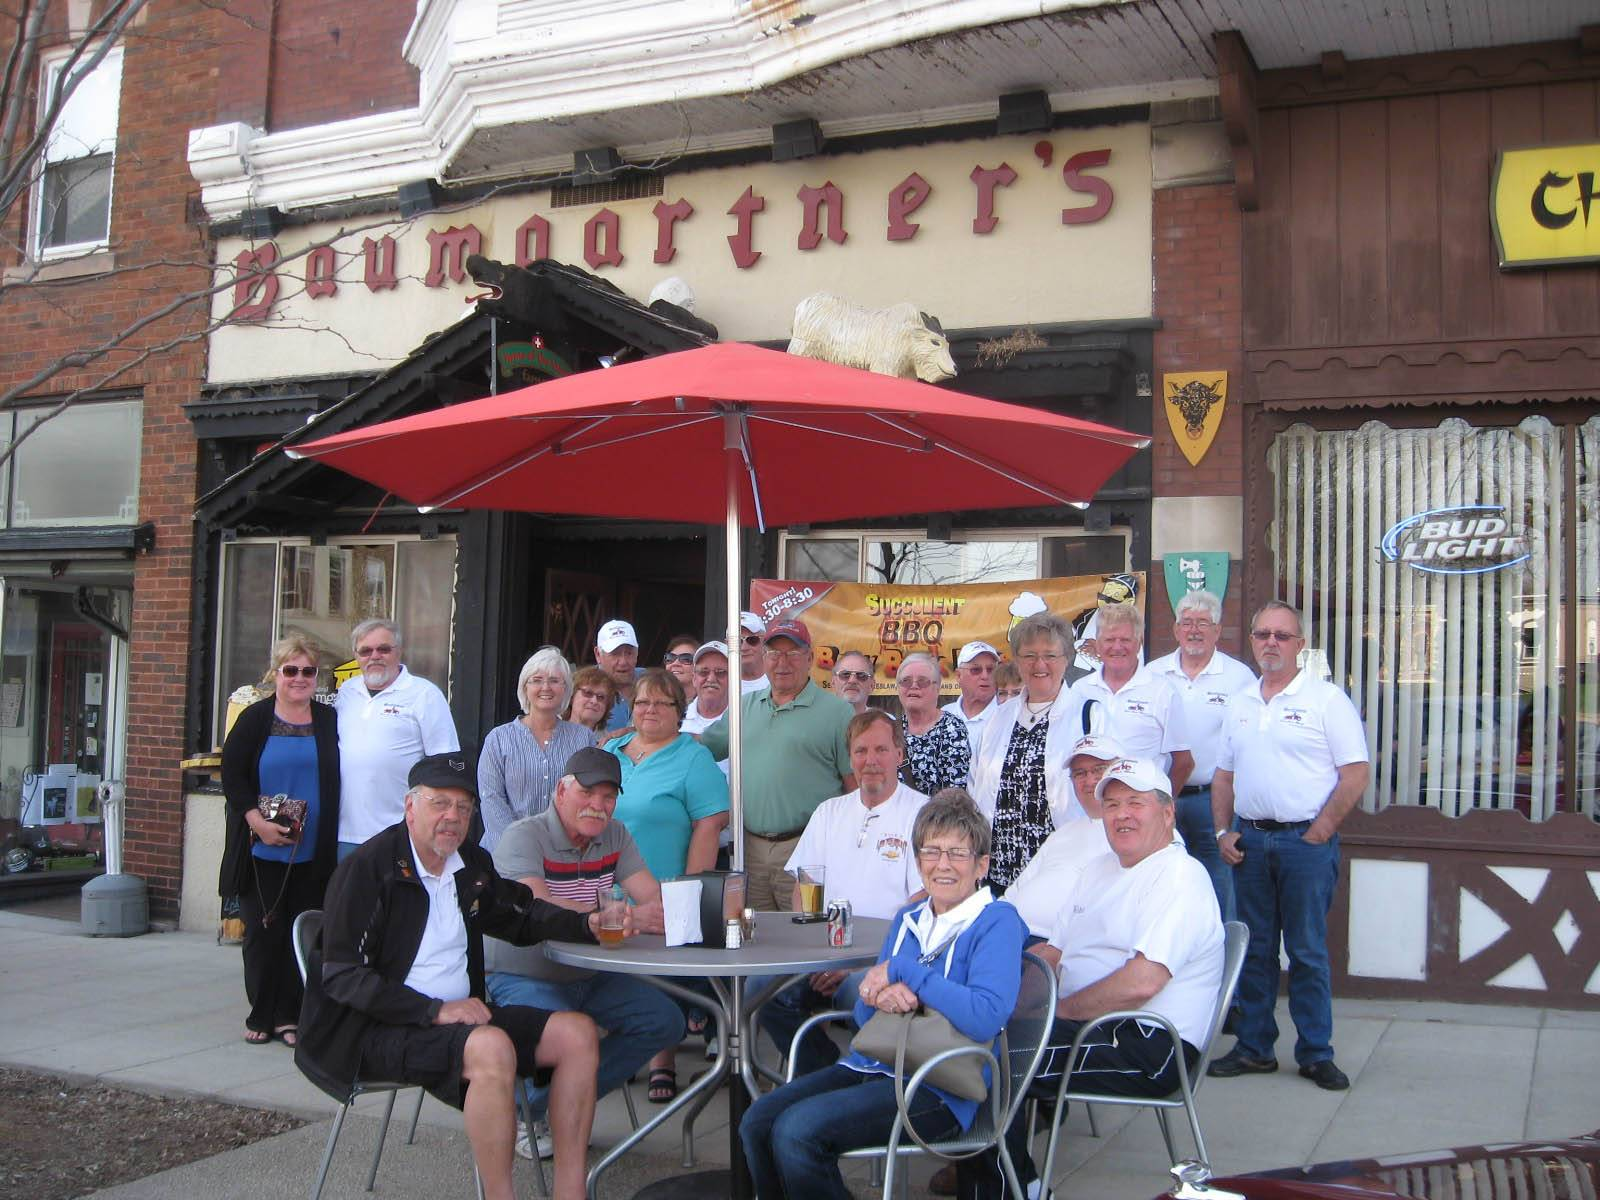 The 'Gang' in front of Baumgartners